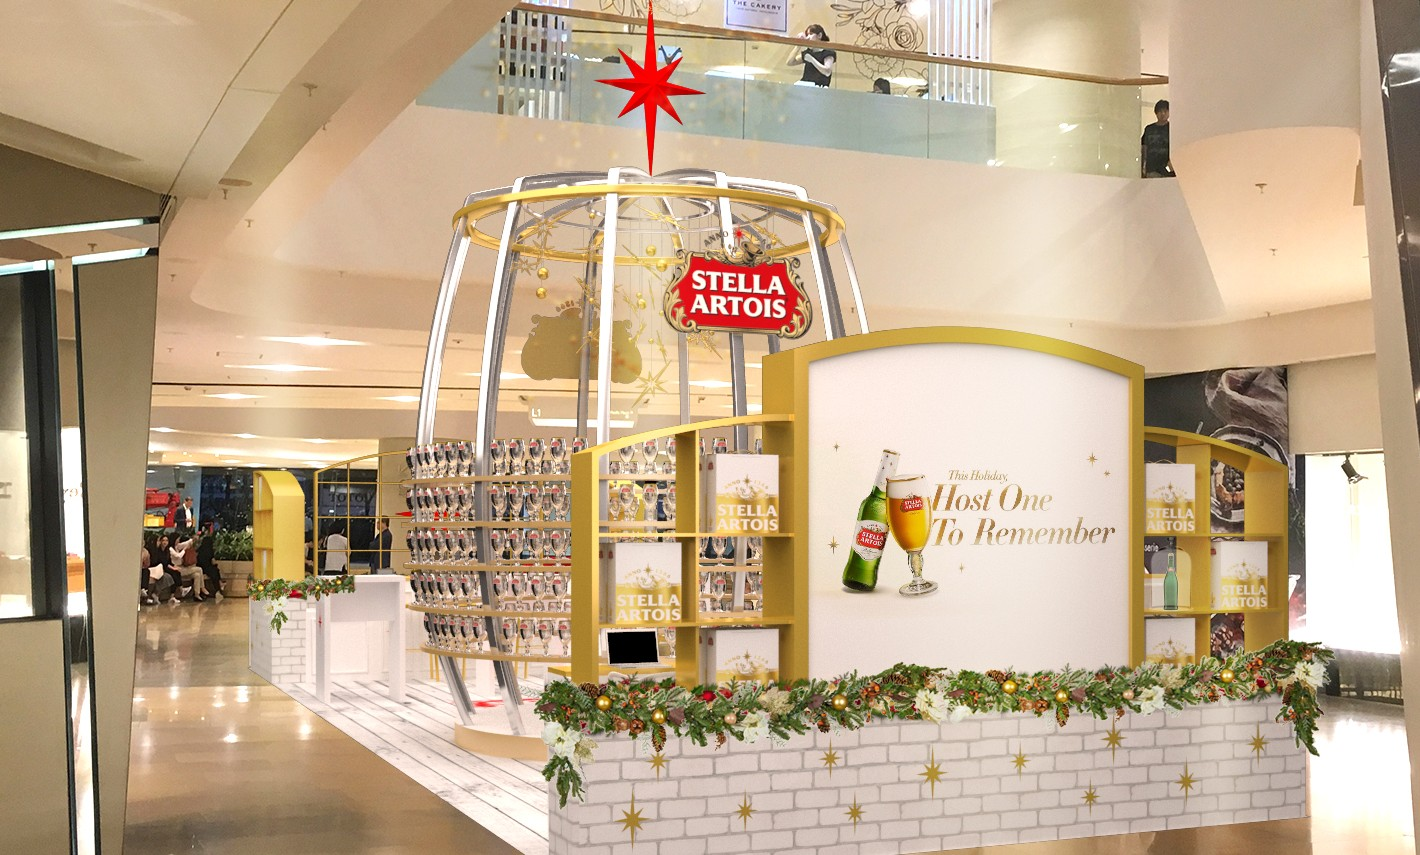 Stella Artois Rolls Out Christmas Pop Up Store Marketing